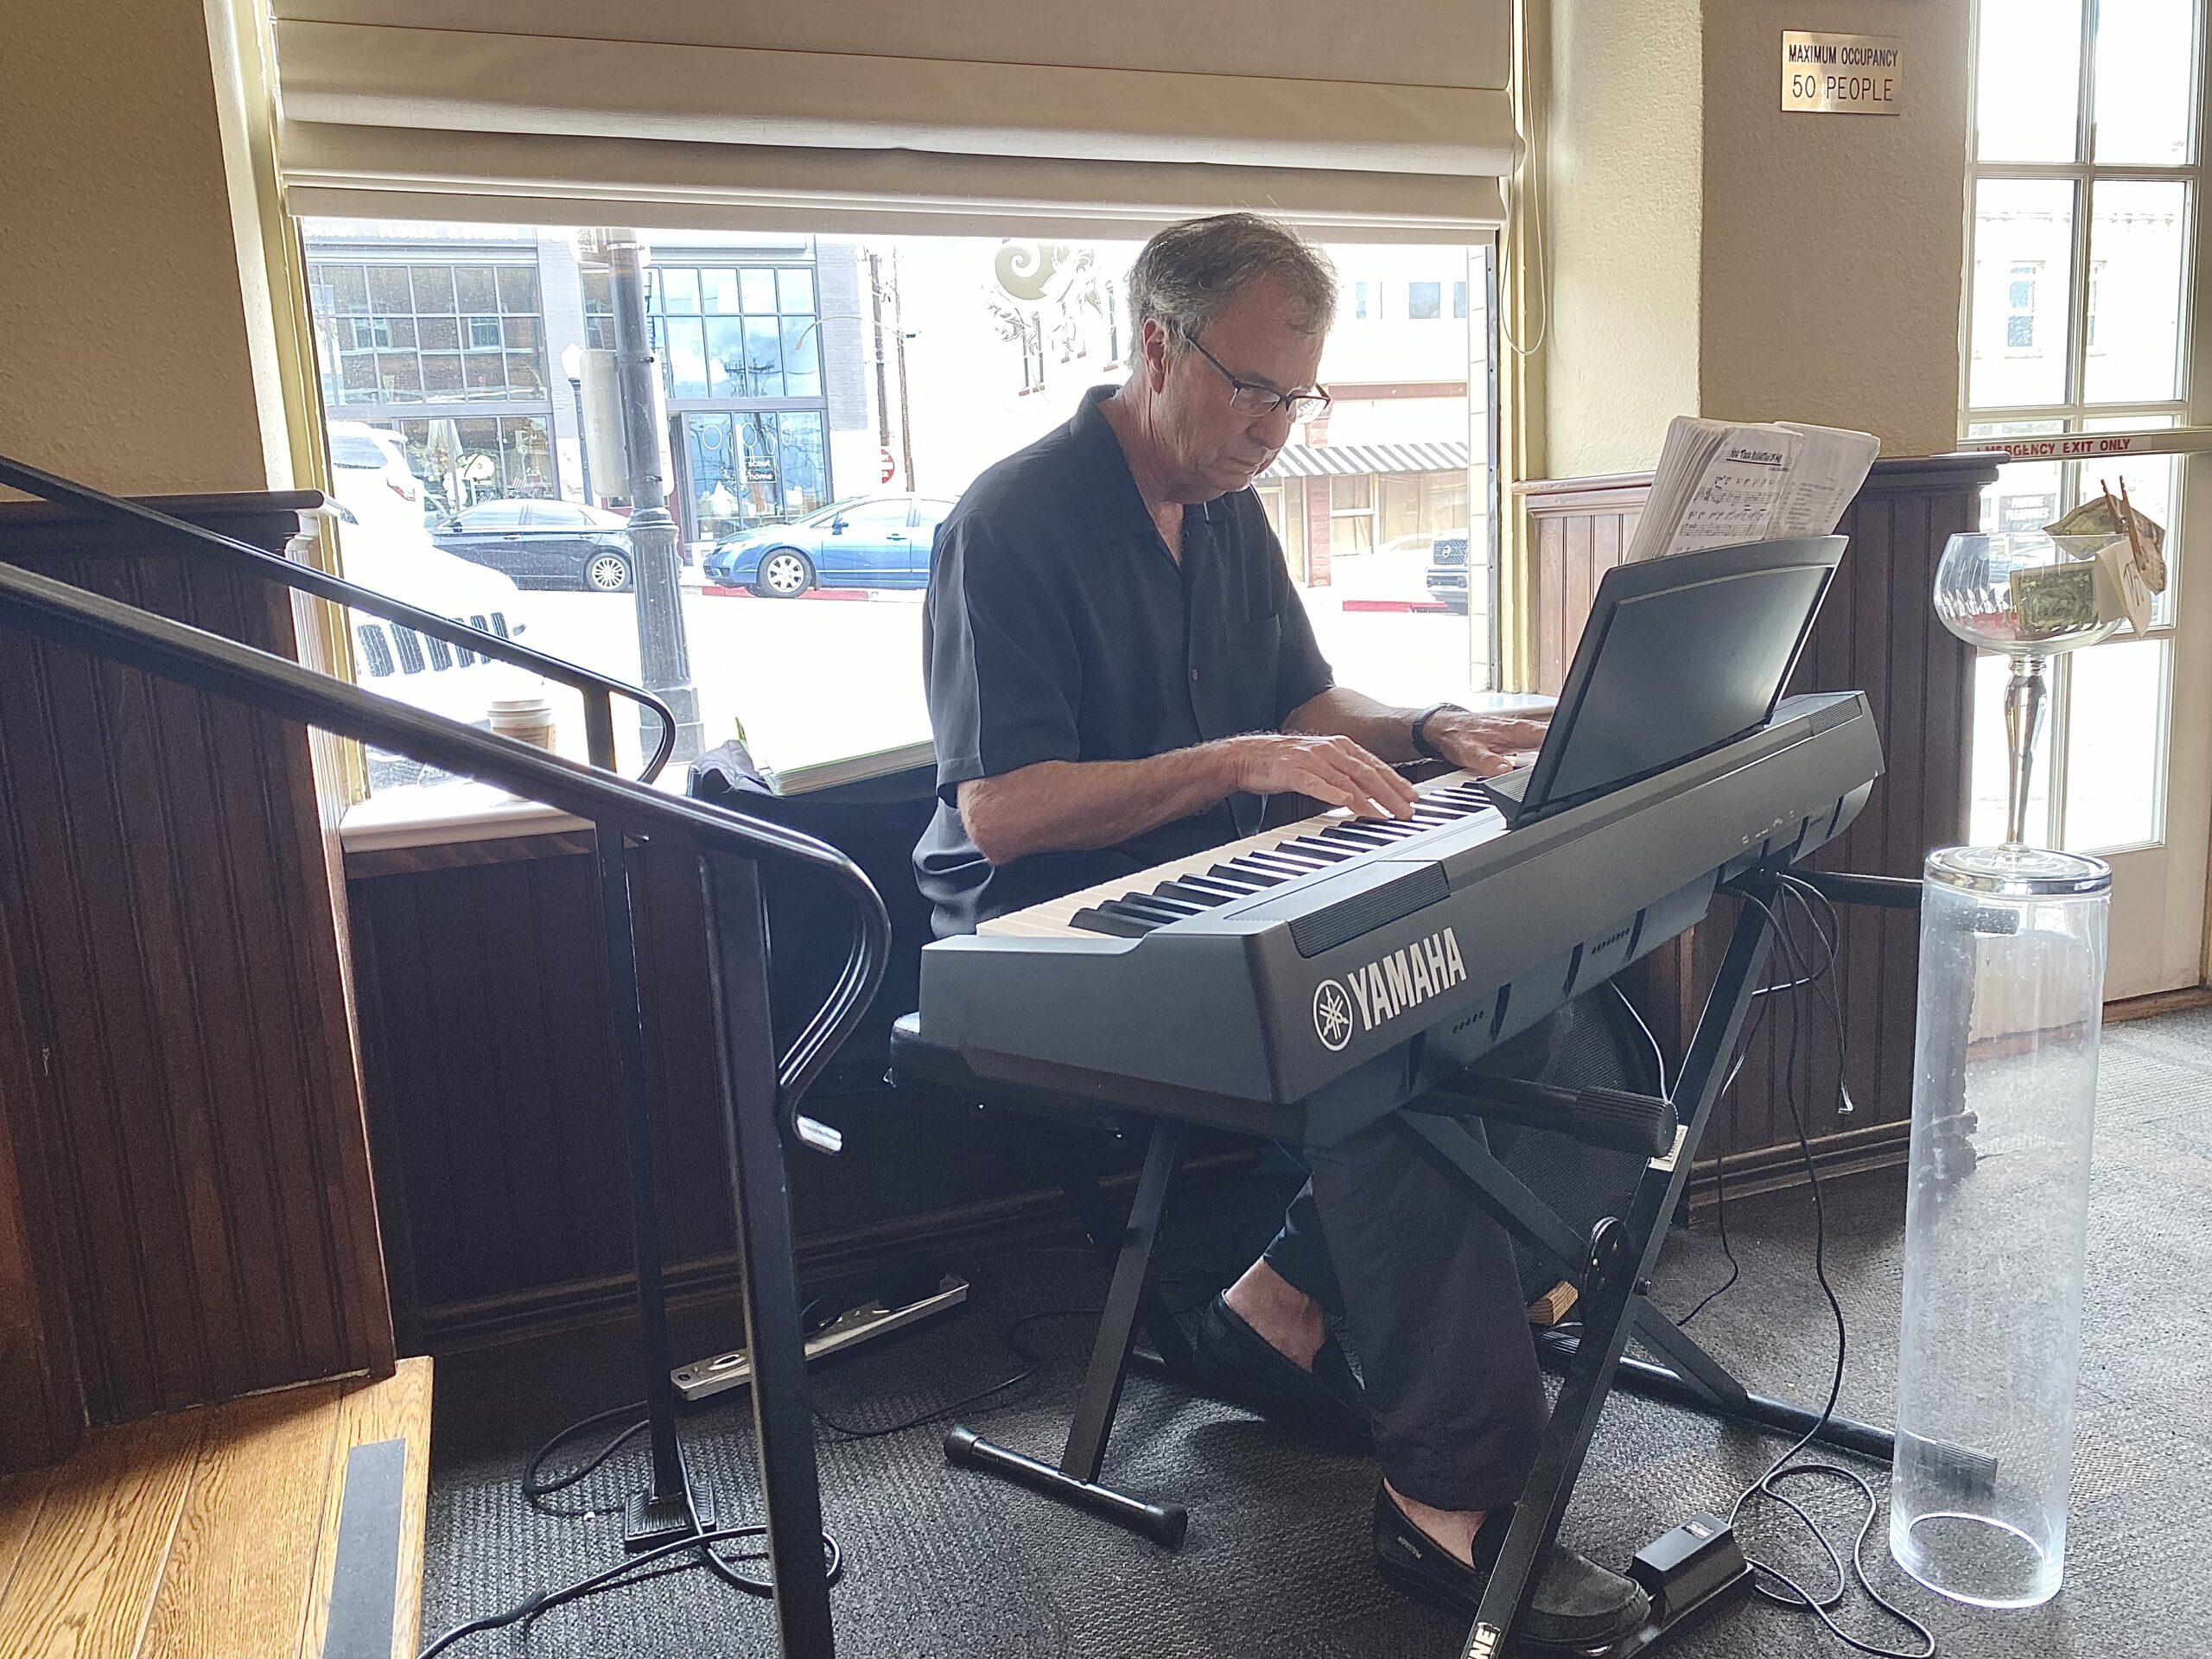 Things to do in Prescott AZ - Musician Jeff Weisel playing music at HIgh Tea in the Peacock Room